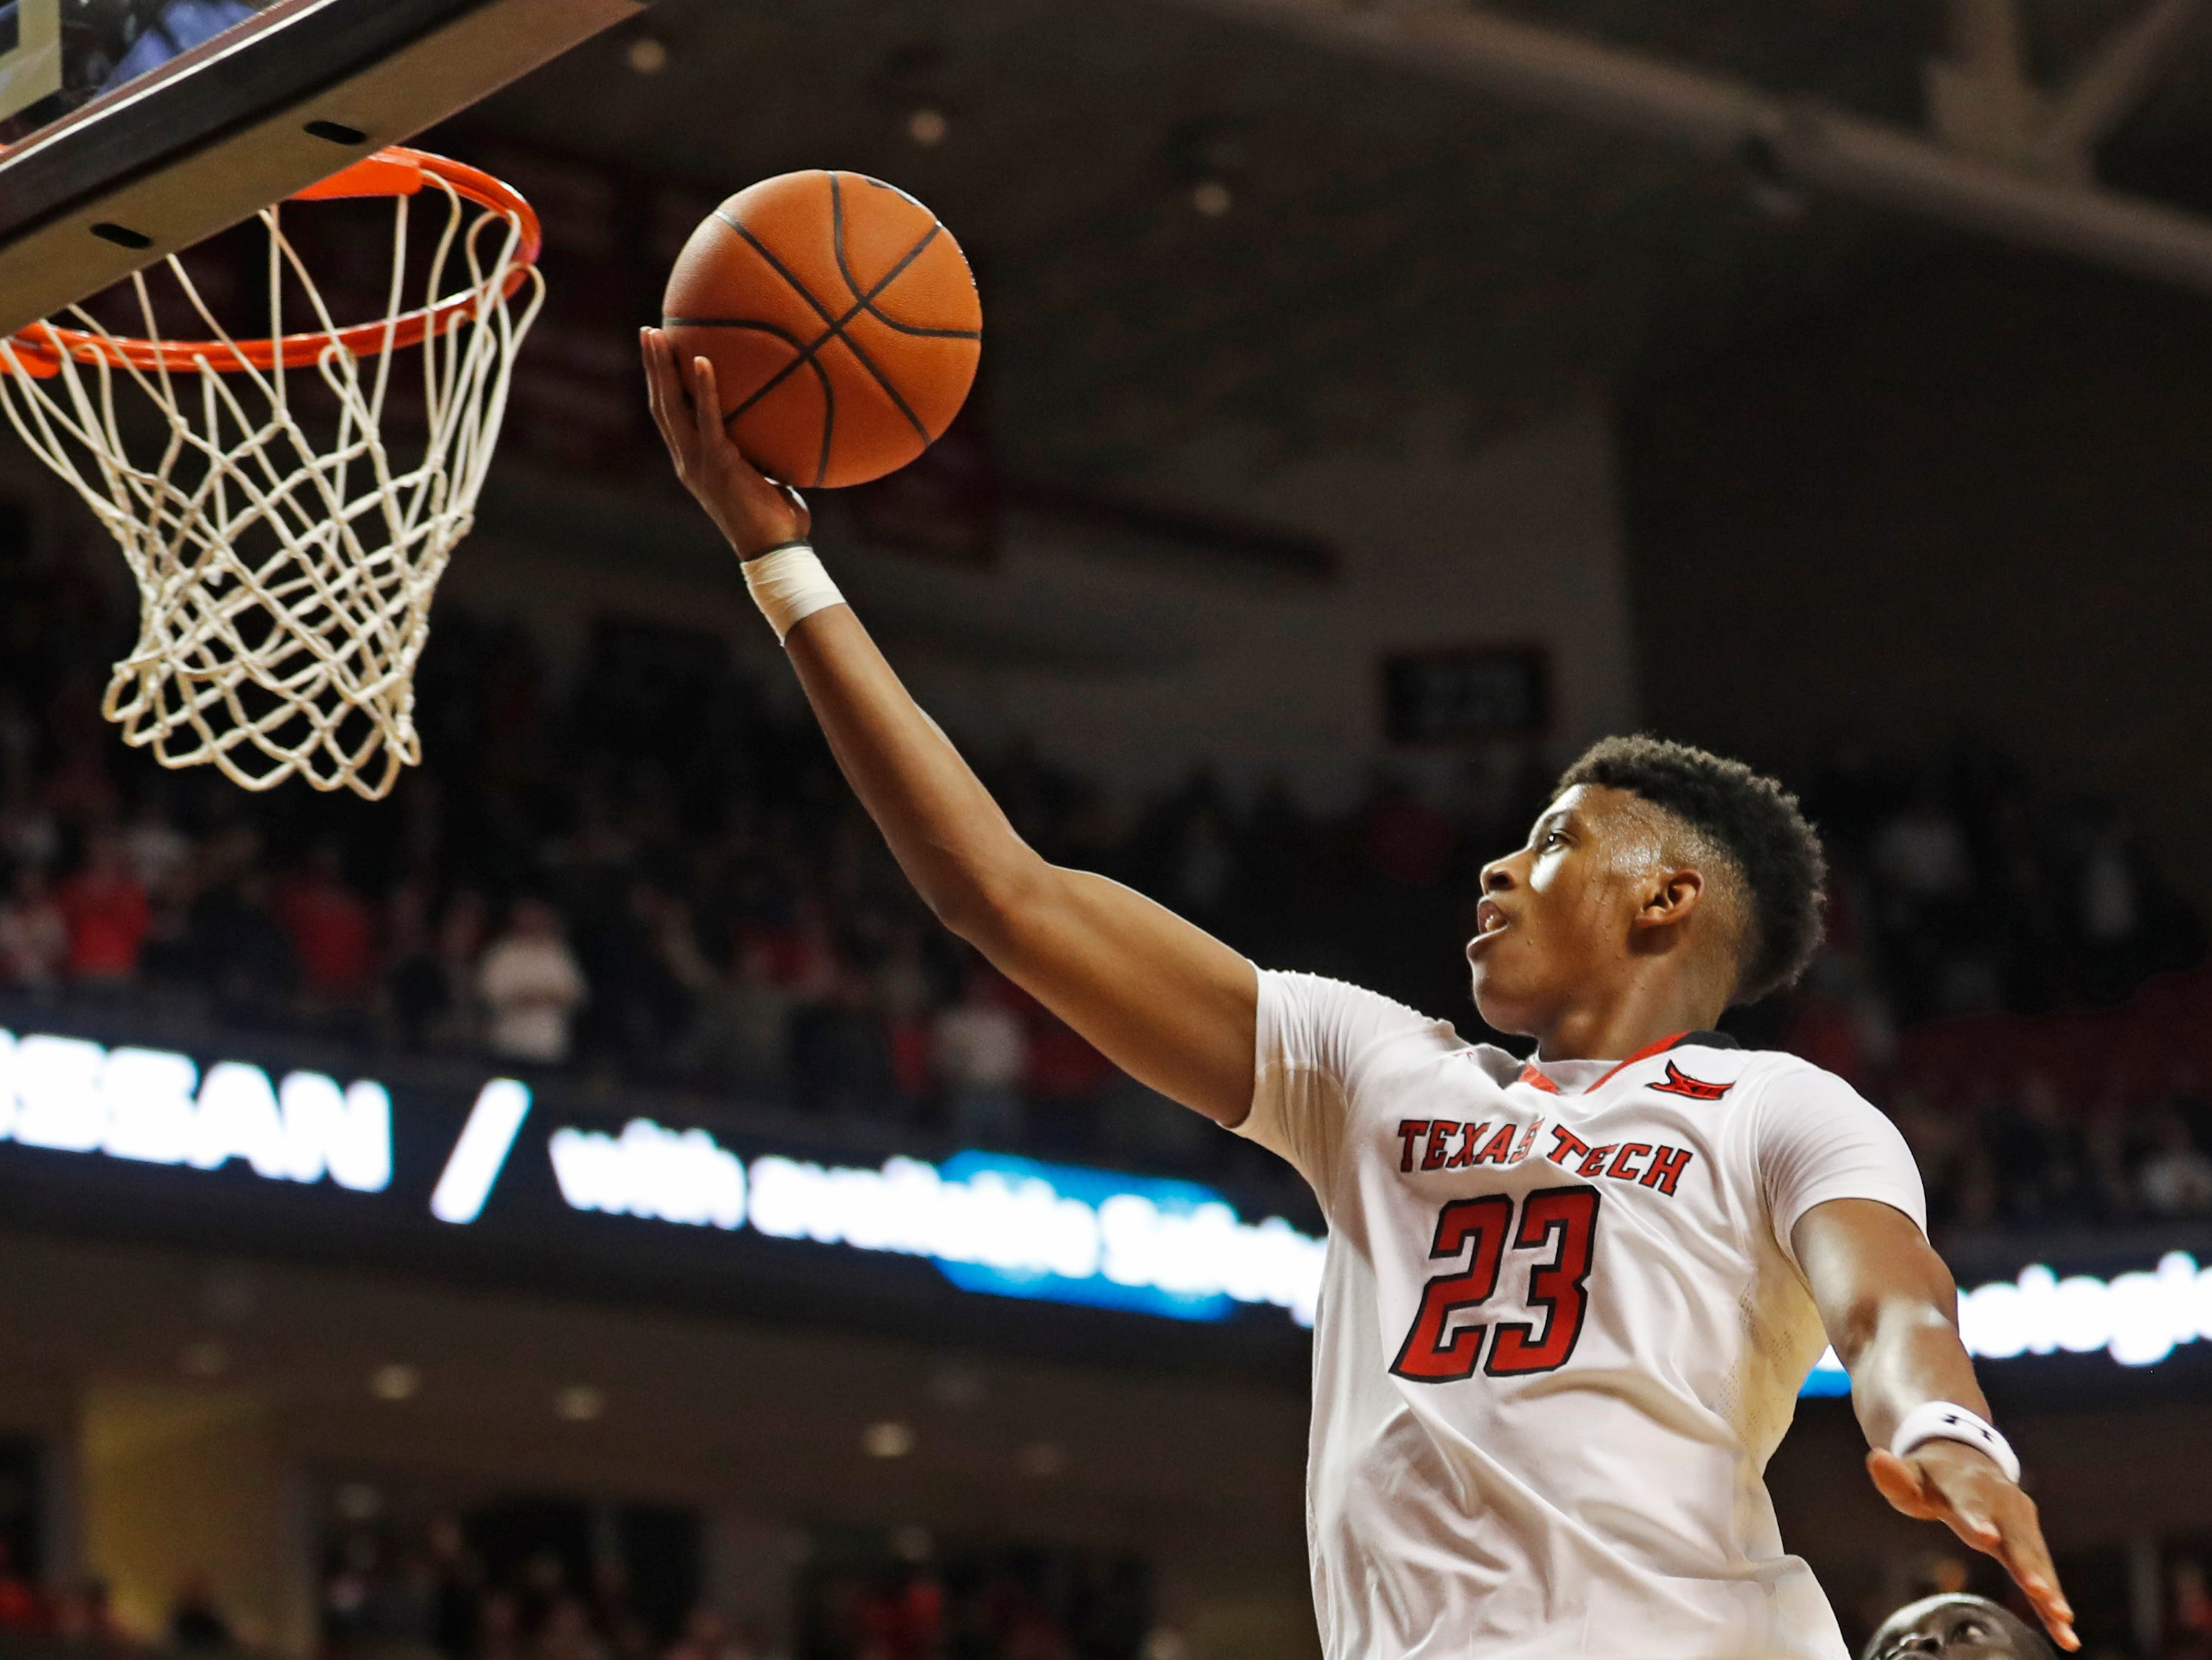 Texas Tech's Jarrett Culver (23) lays up the ball during the second half of the team's NCAA college basketball game against Iowa State, Wednesday, Jan. 16, 2019, in Lubbock, Texas.